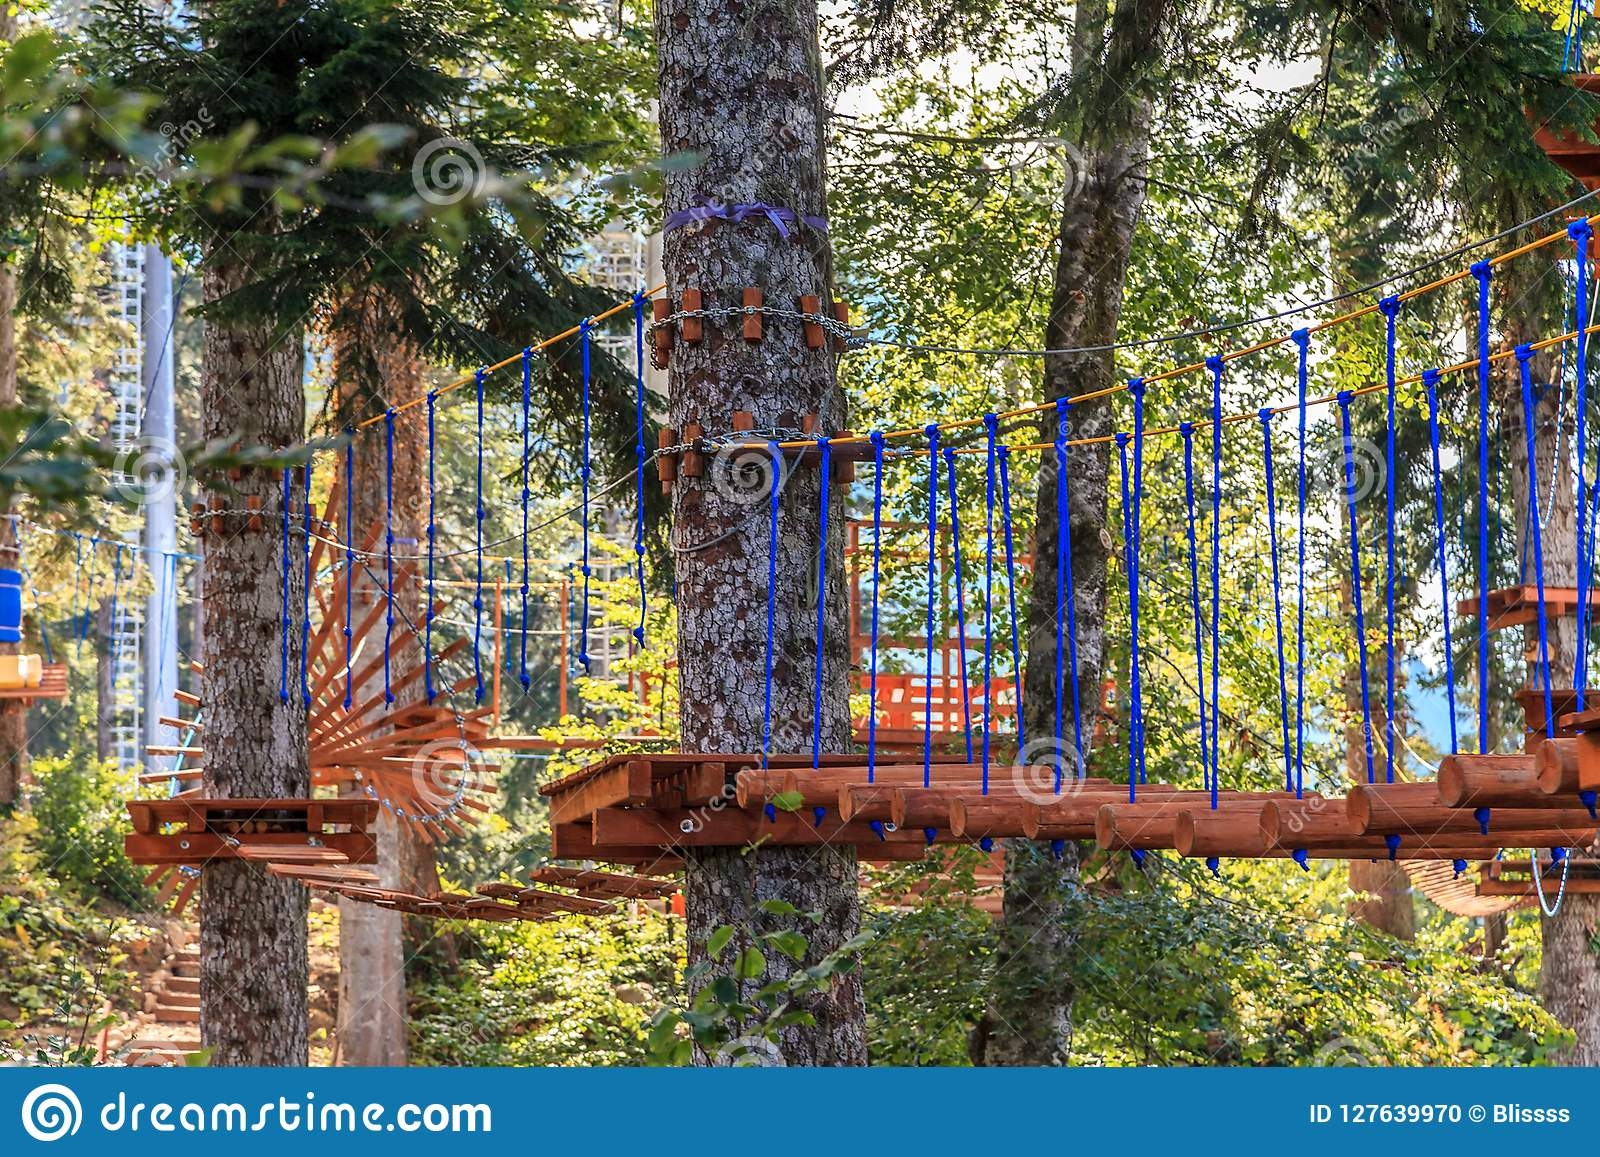 Rope Adventure Park In Fire Tree Forest Scenic View Summer Outdoor Sports And Leisure Activities Stock Photo Image Of Danger Autumn 127639970